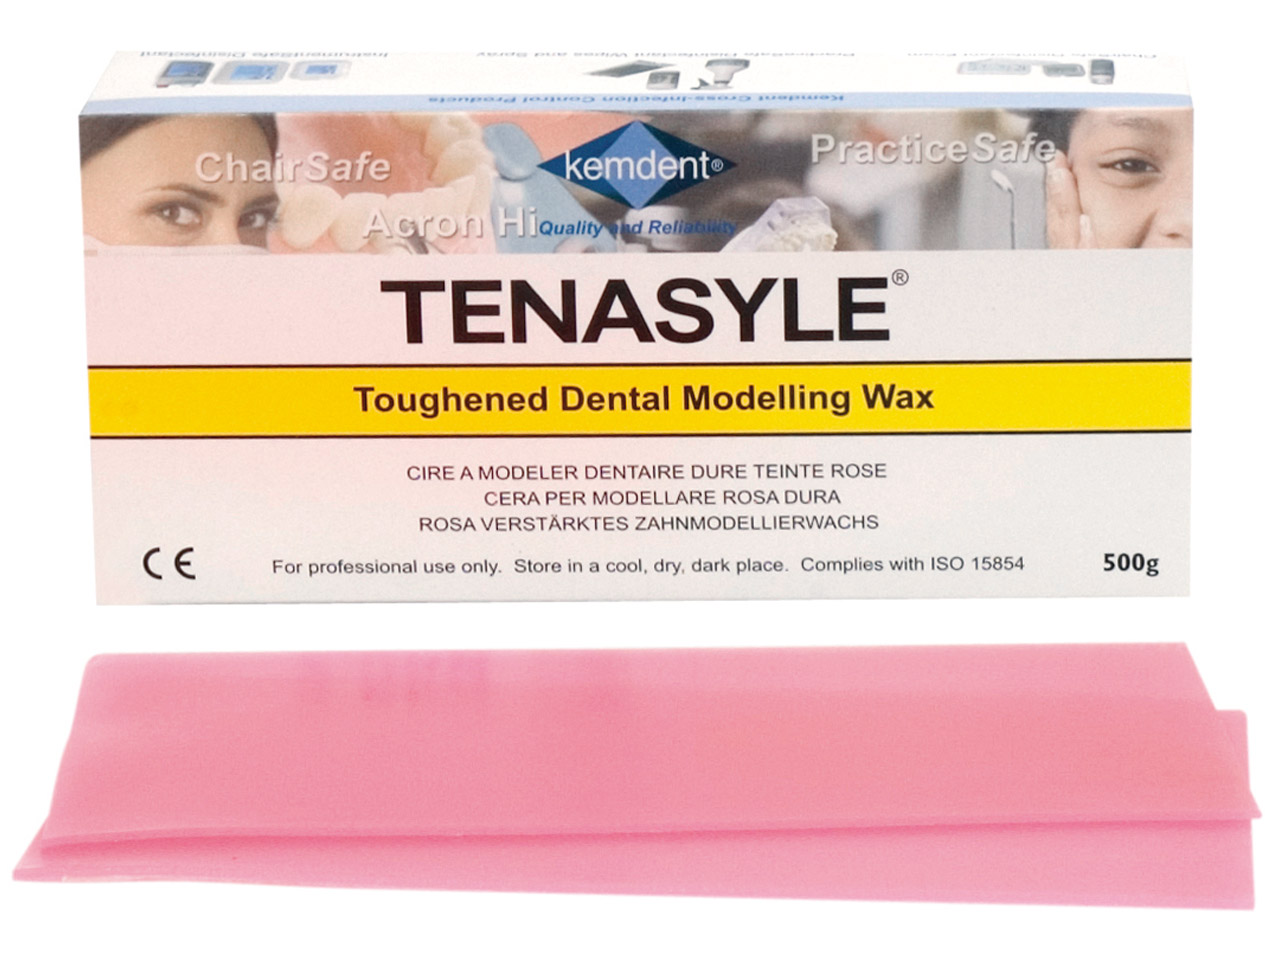 Kemdent Tenasyle No 4, 500gm